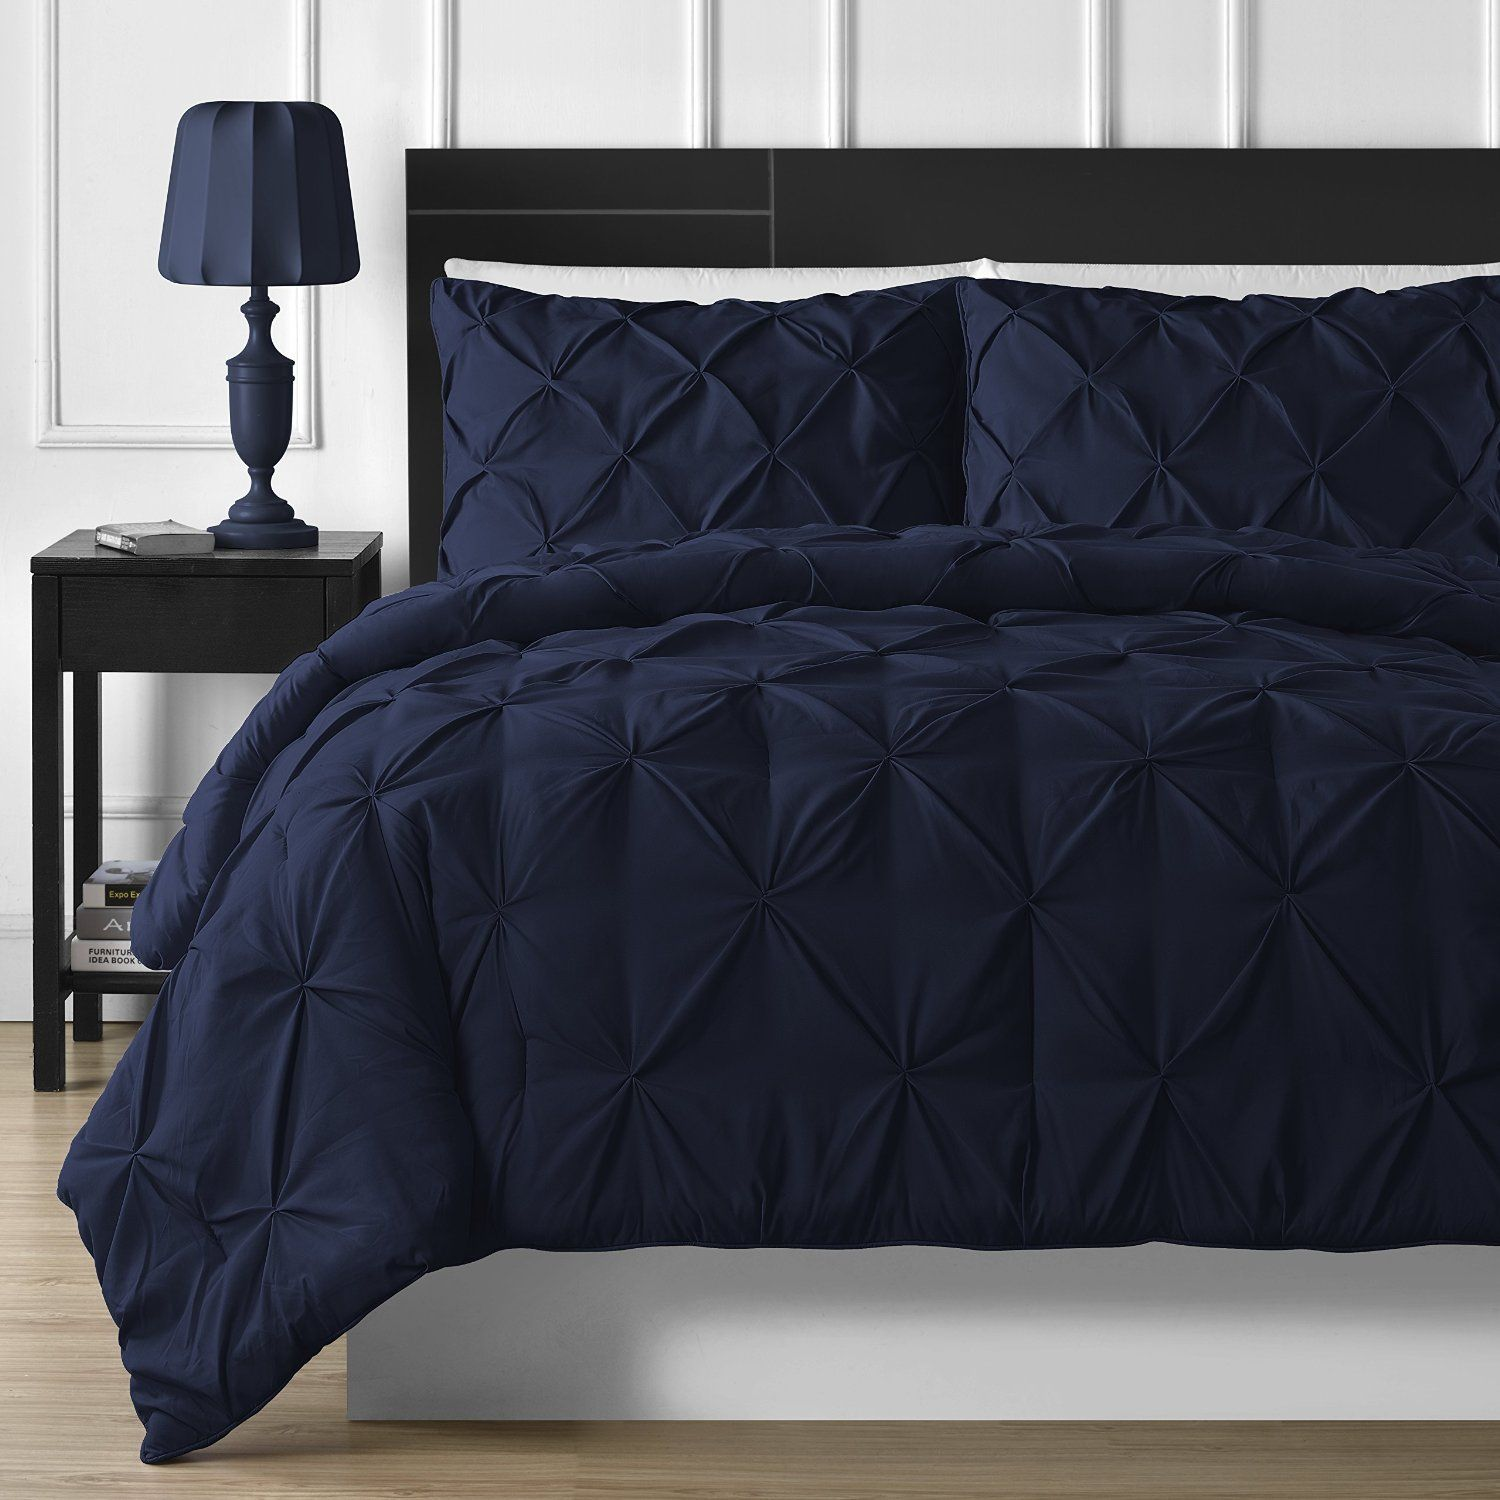 Blue bedspreads and comforters - P R Bedding 3 Piece Luxurious Pinch Pleat Comforter Set King Navy Blue